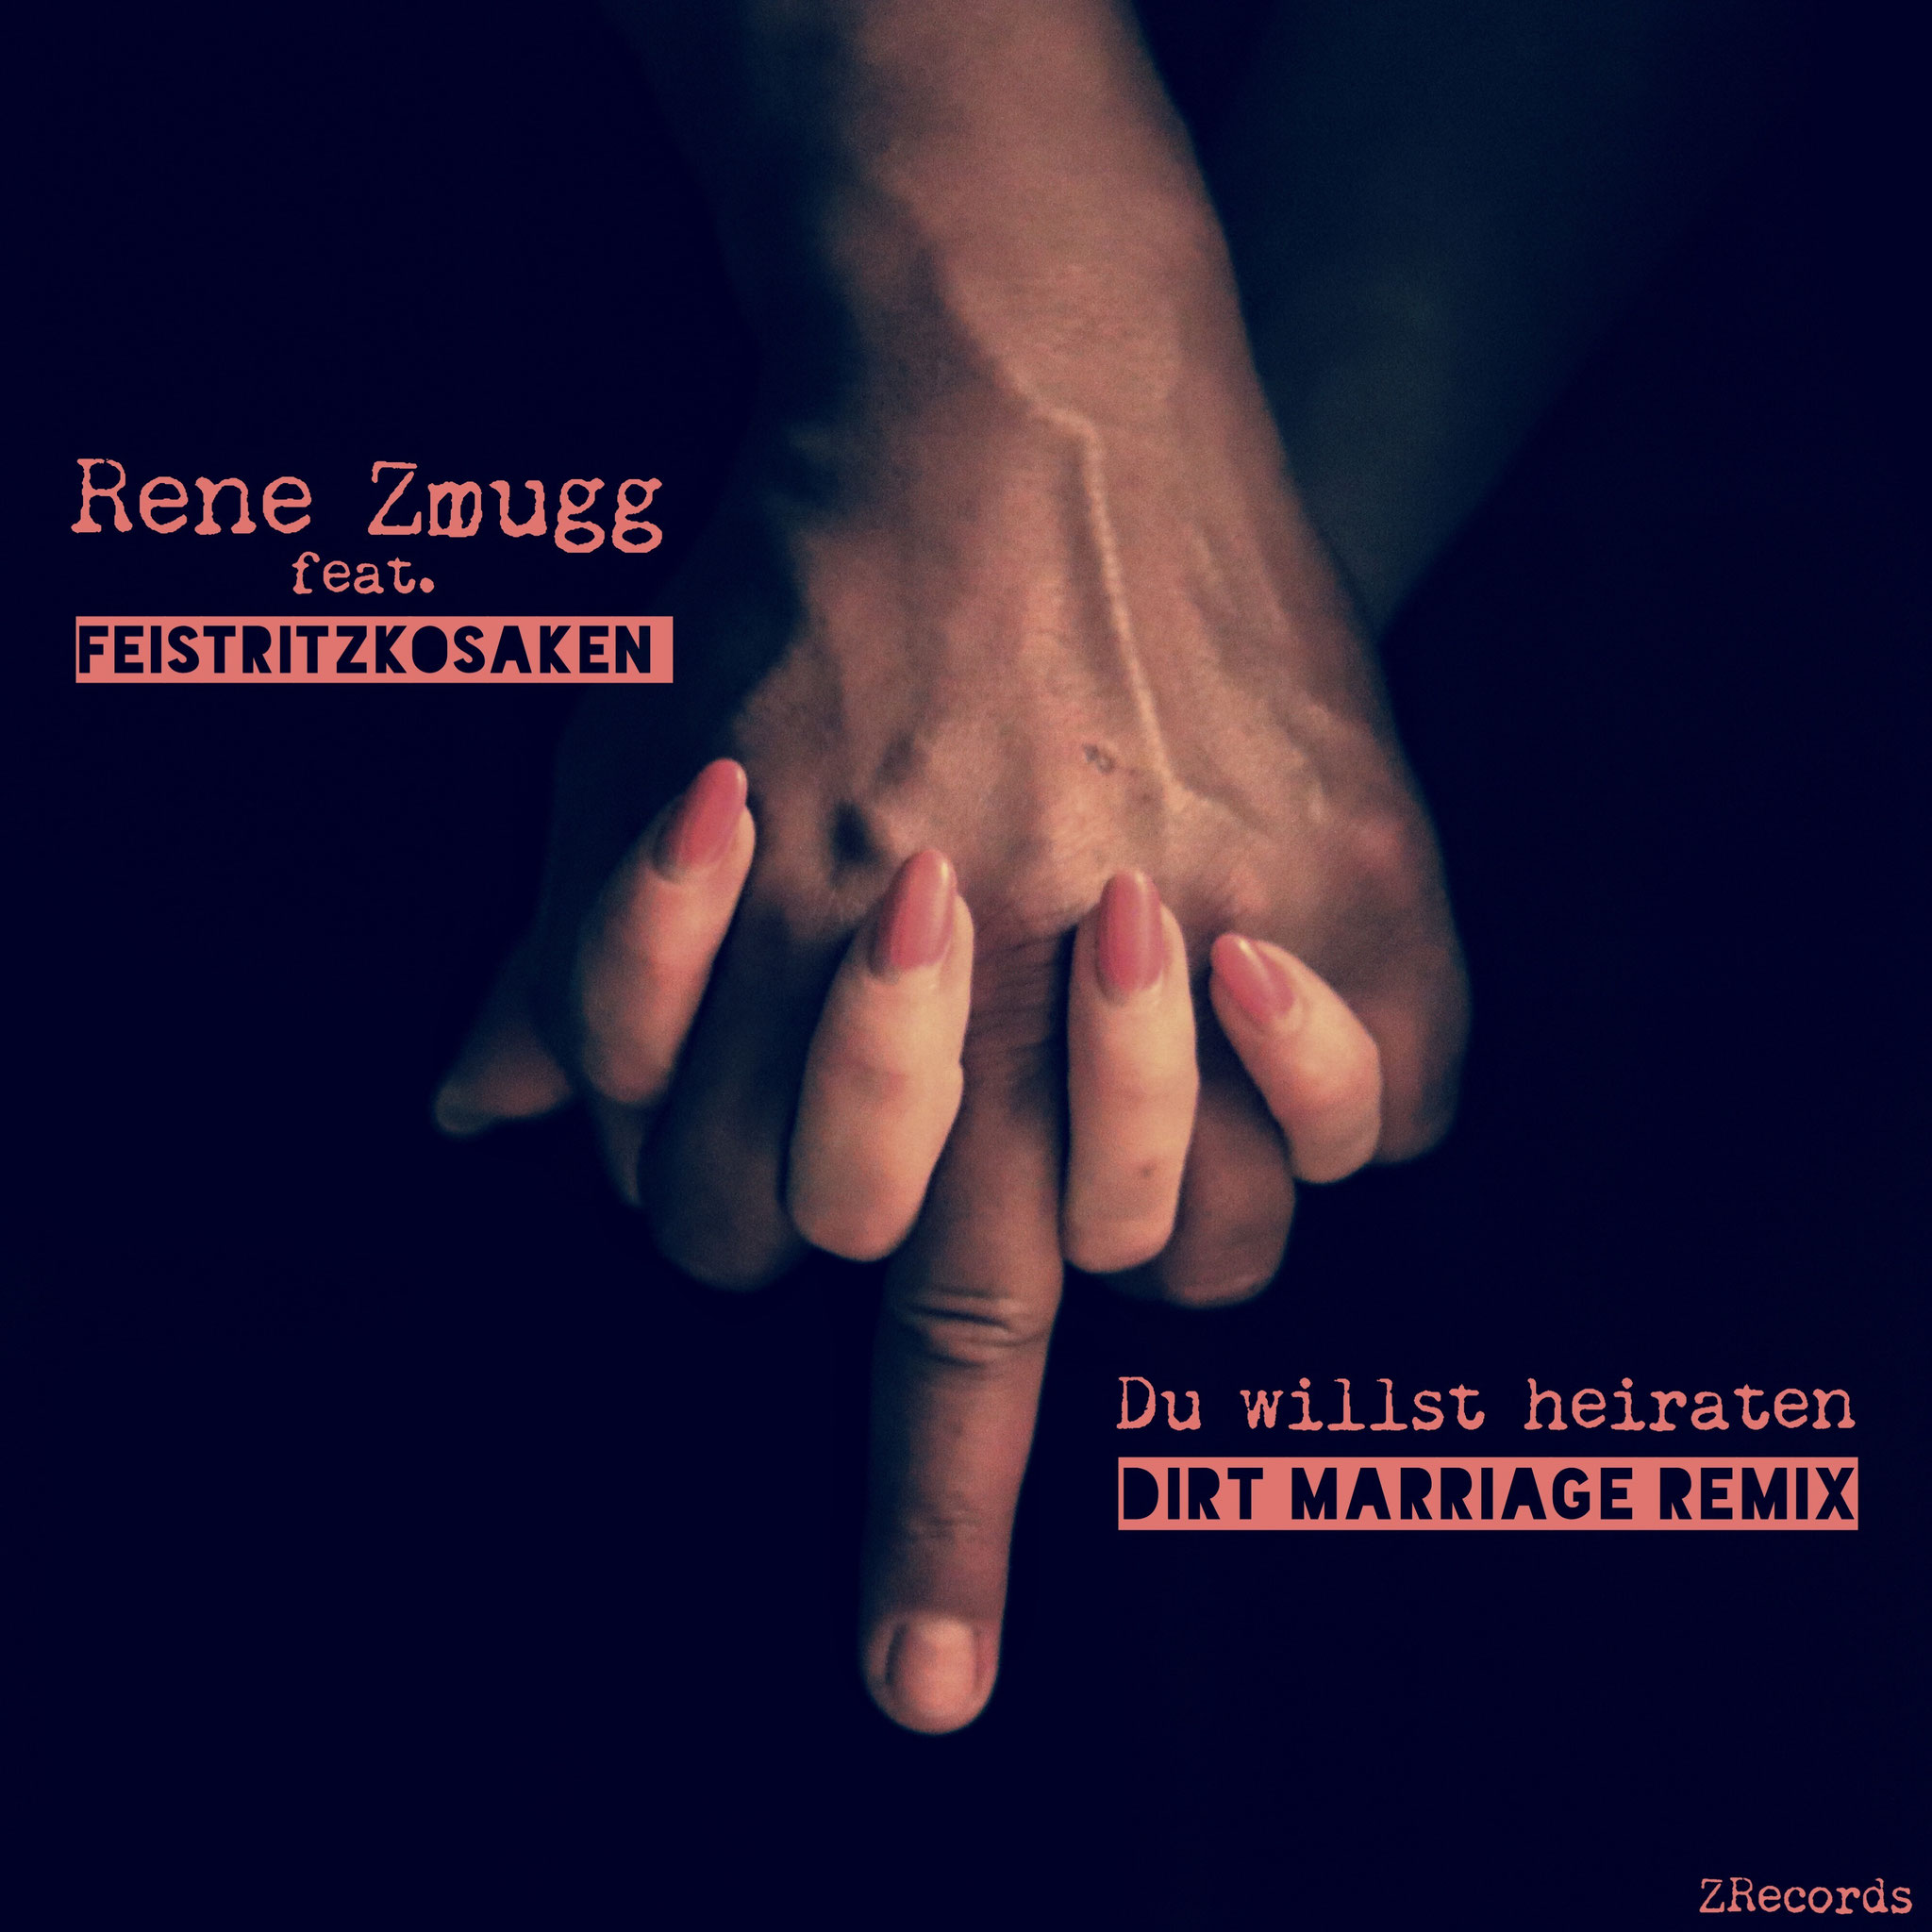 Single - Du willst heiraten (Dirt Marriage Remix) feat. Feistritzkosaken